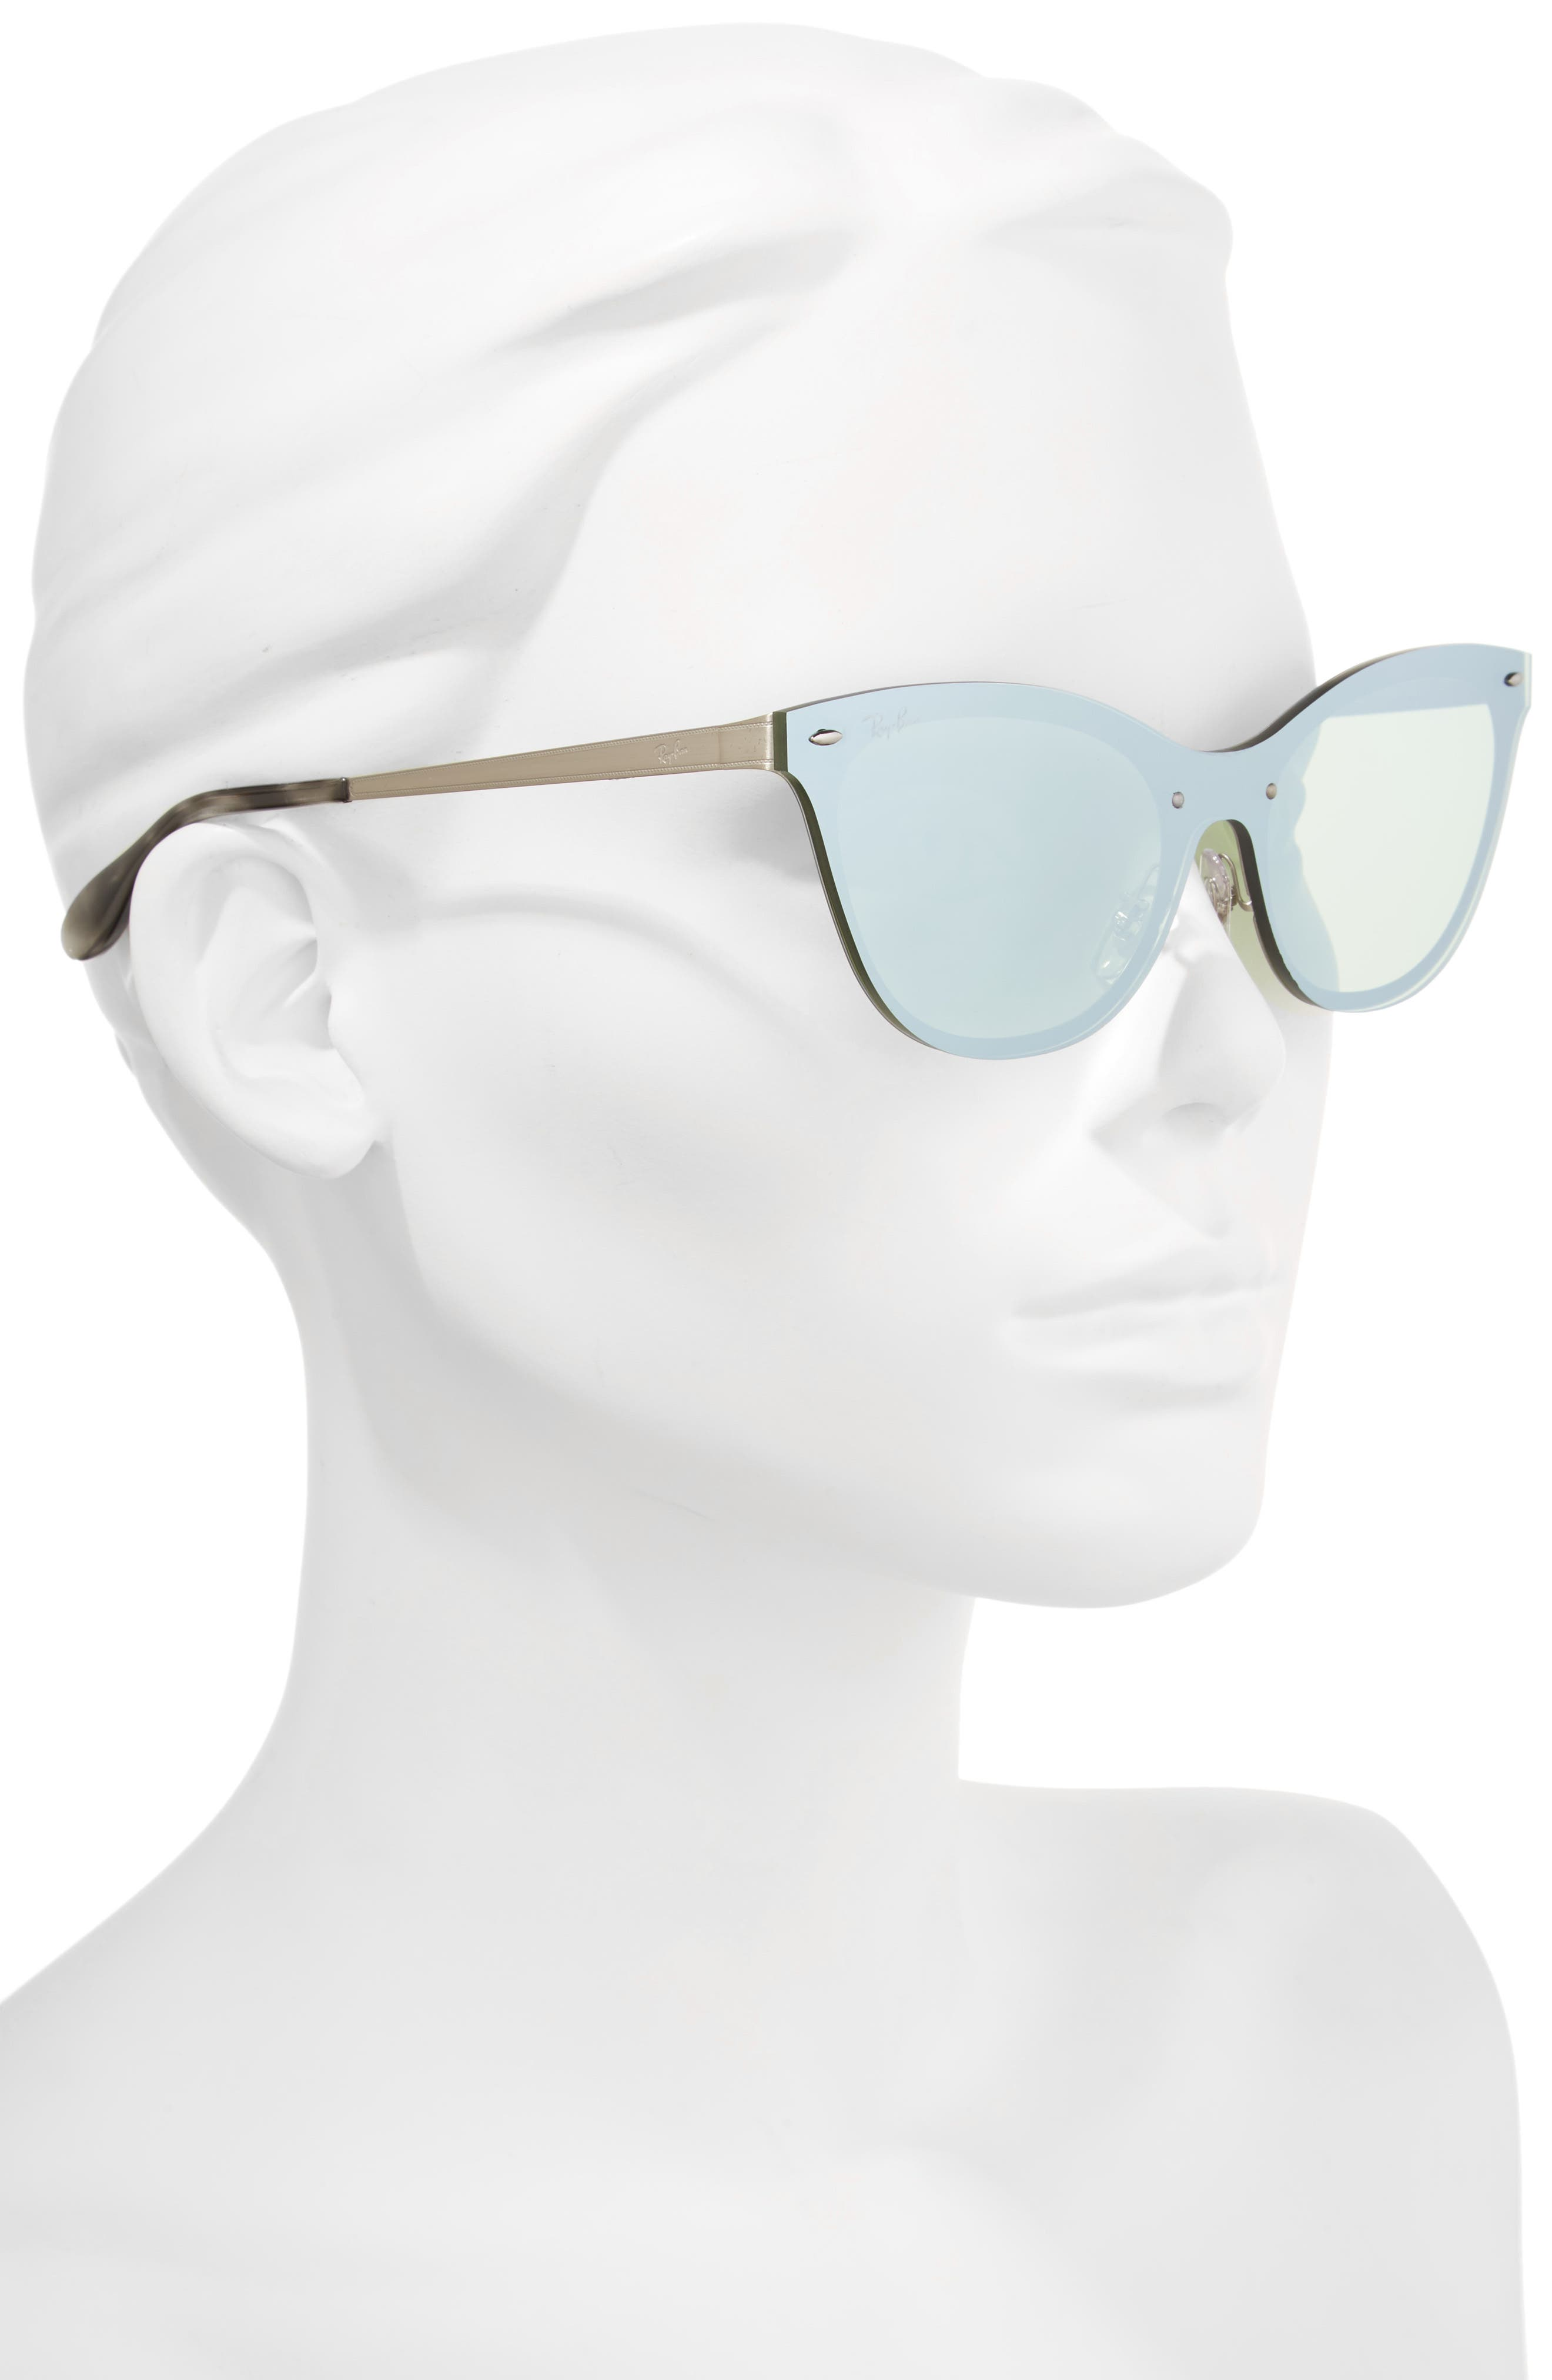 Alternate Image 2  - Ray-Ban 50mm Blaze Clubmaster Mirrored Sunglasses